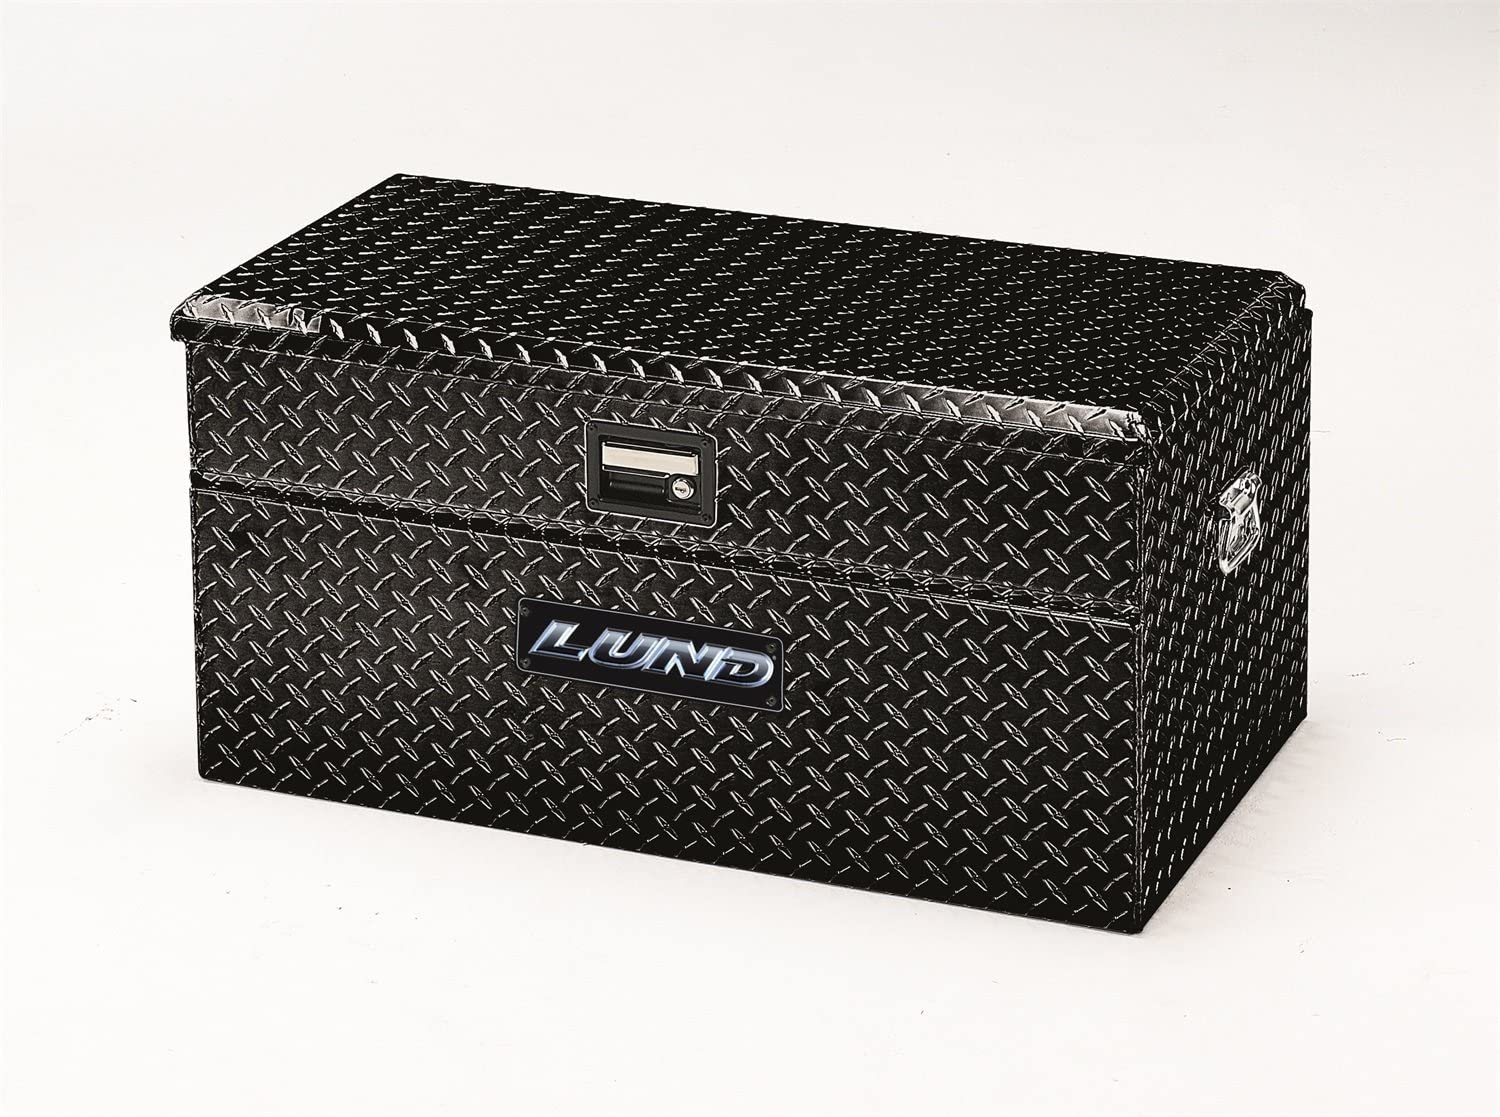 Lund 79460WB 60-Inch Aluminum Wide Flush Mount Truck Tool Box Black Diamond Plated